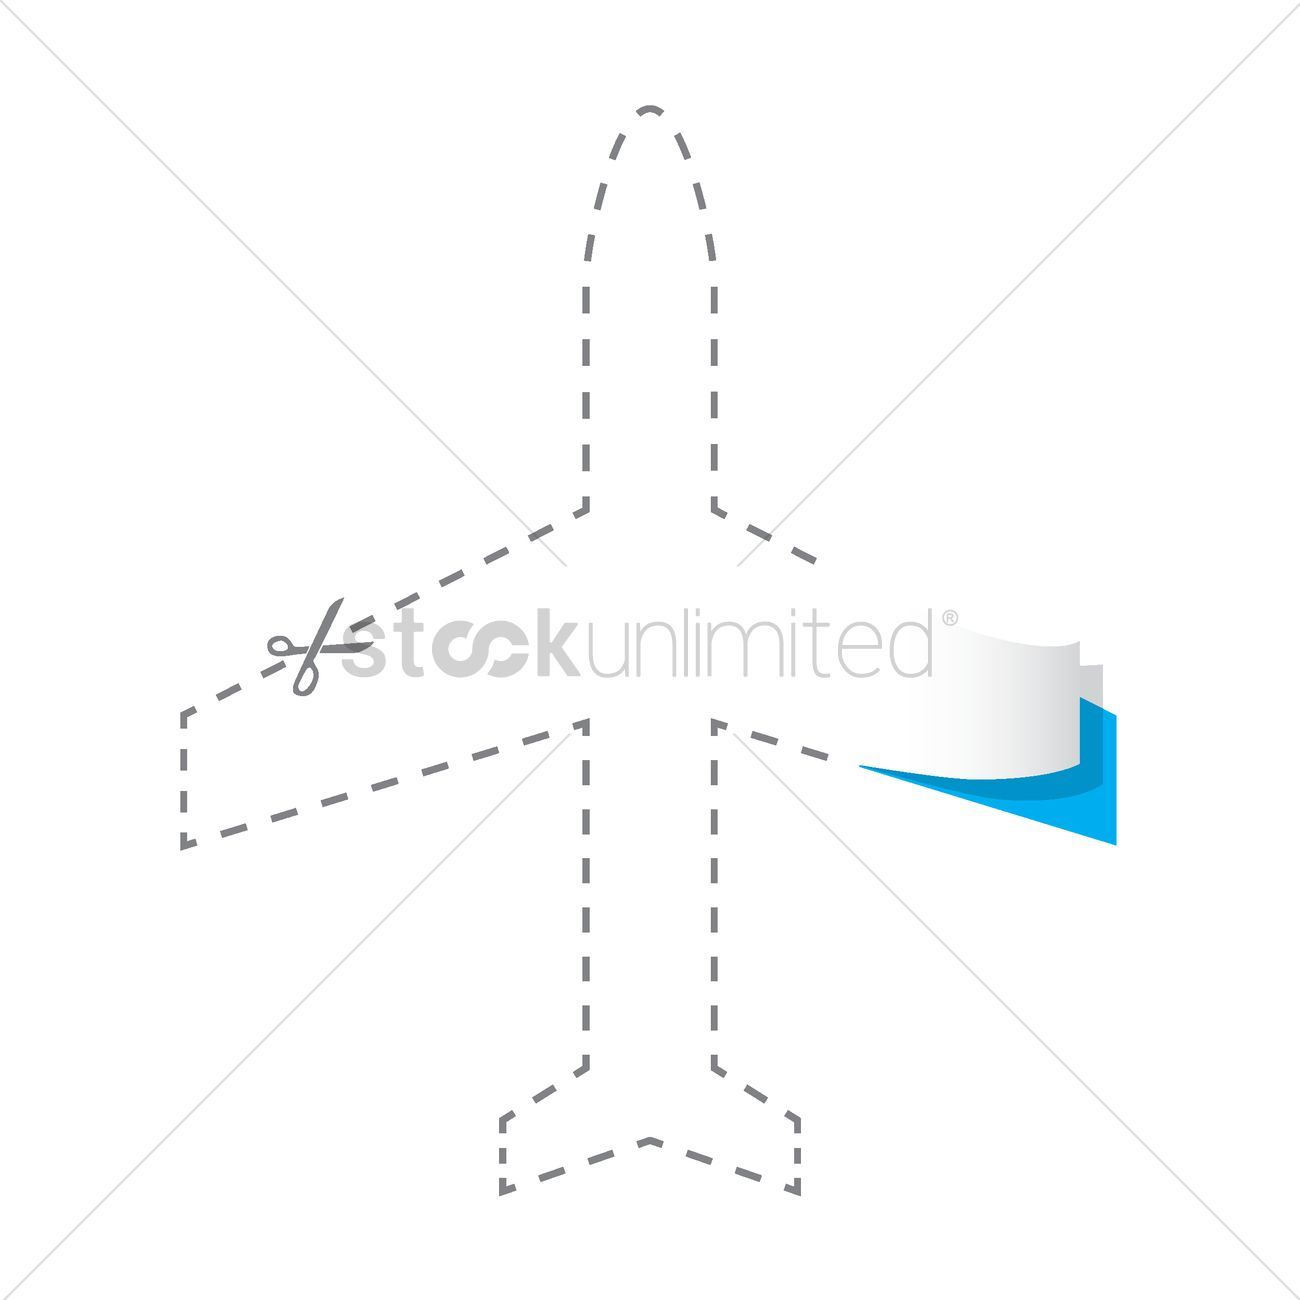 Paper cut out of aeroplane vector image 1504806 stockunlimited paper cut out of aeroplane vector graphic buycottarizona Gallery